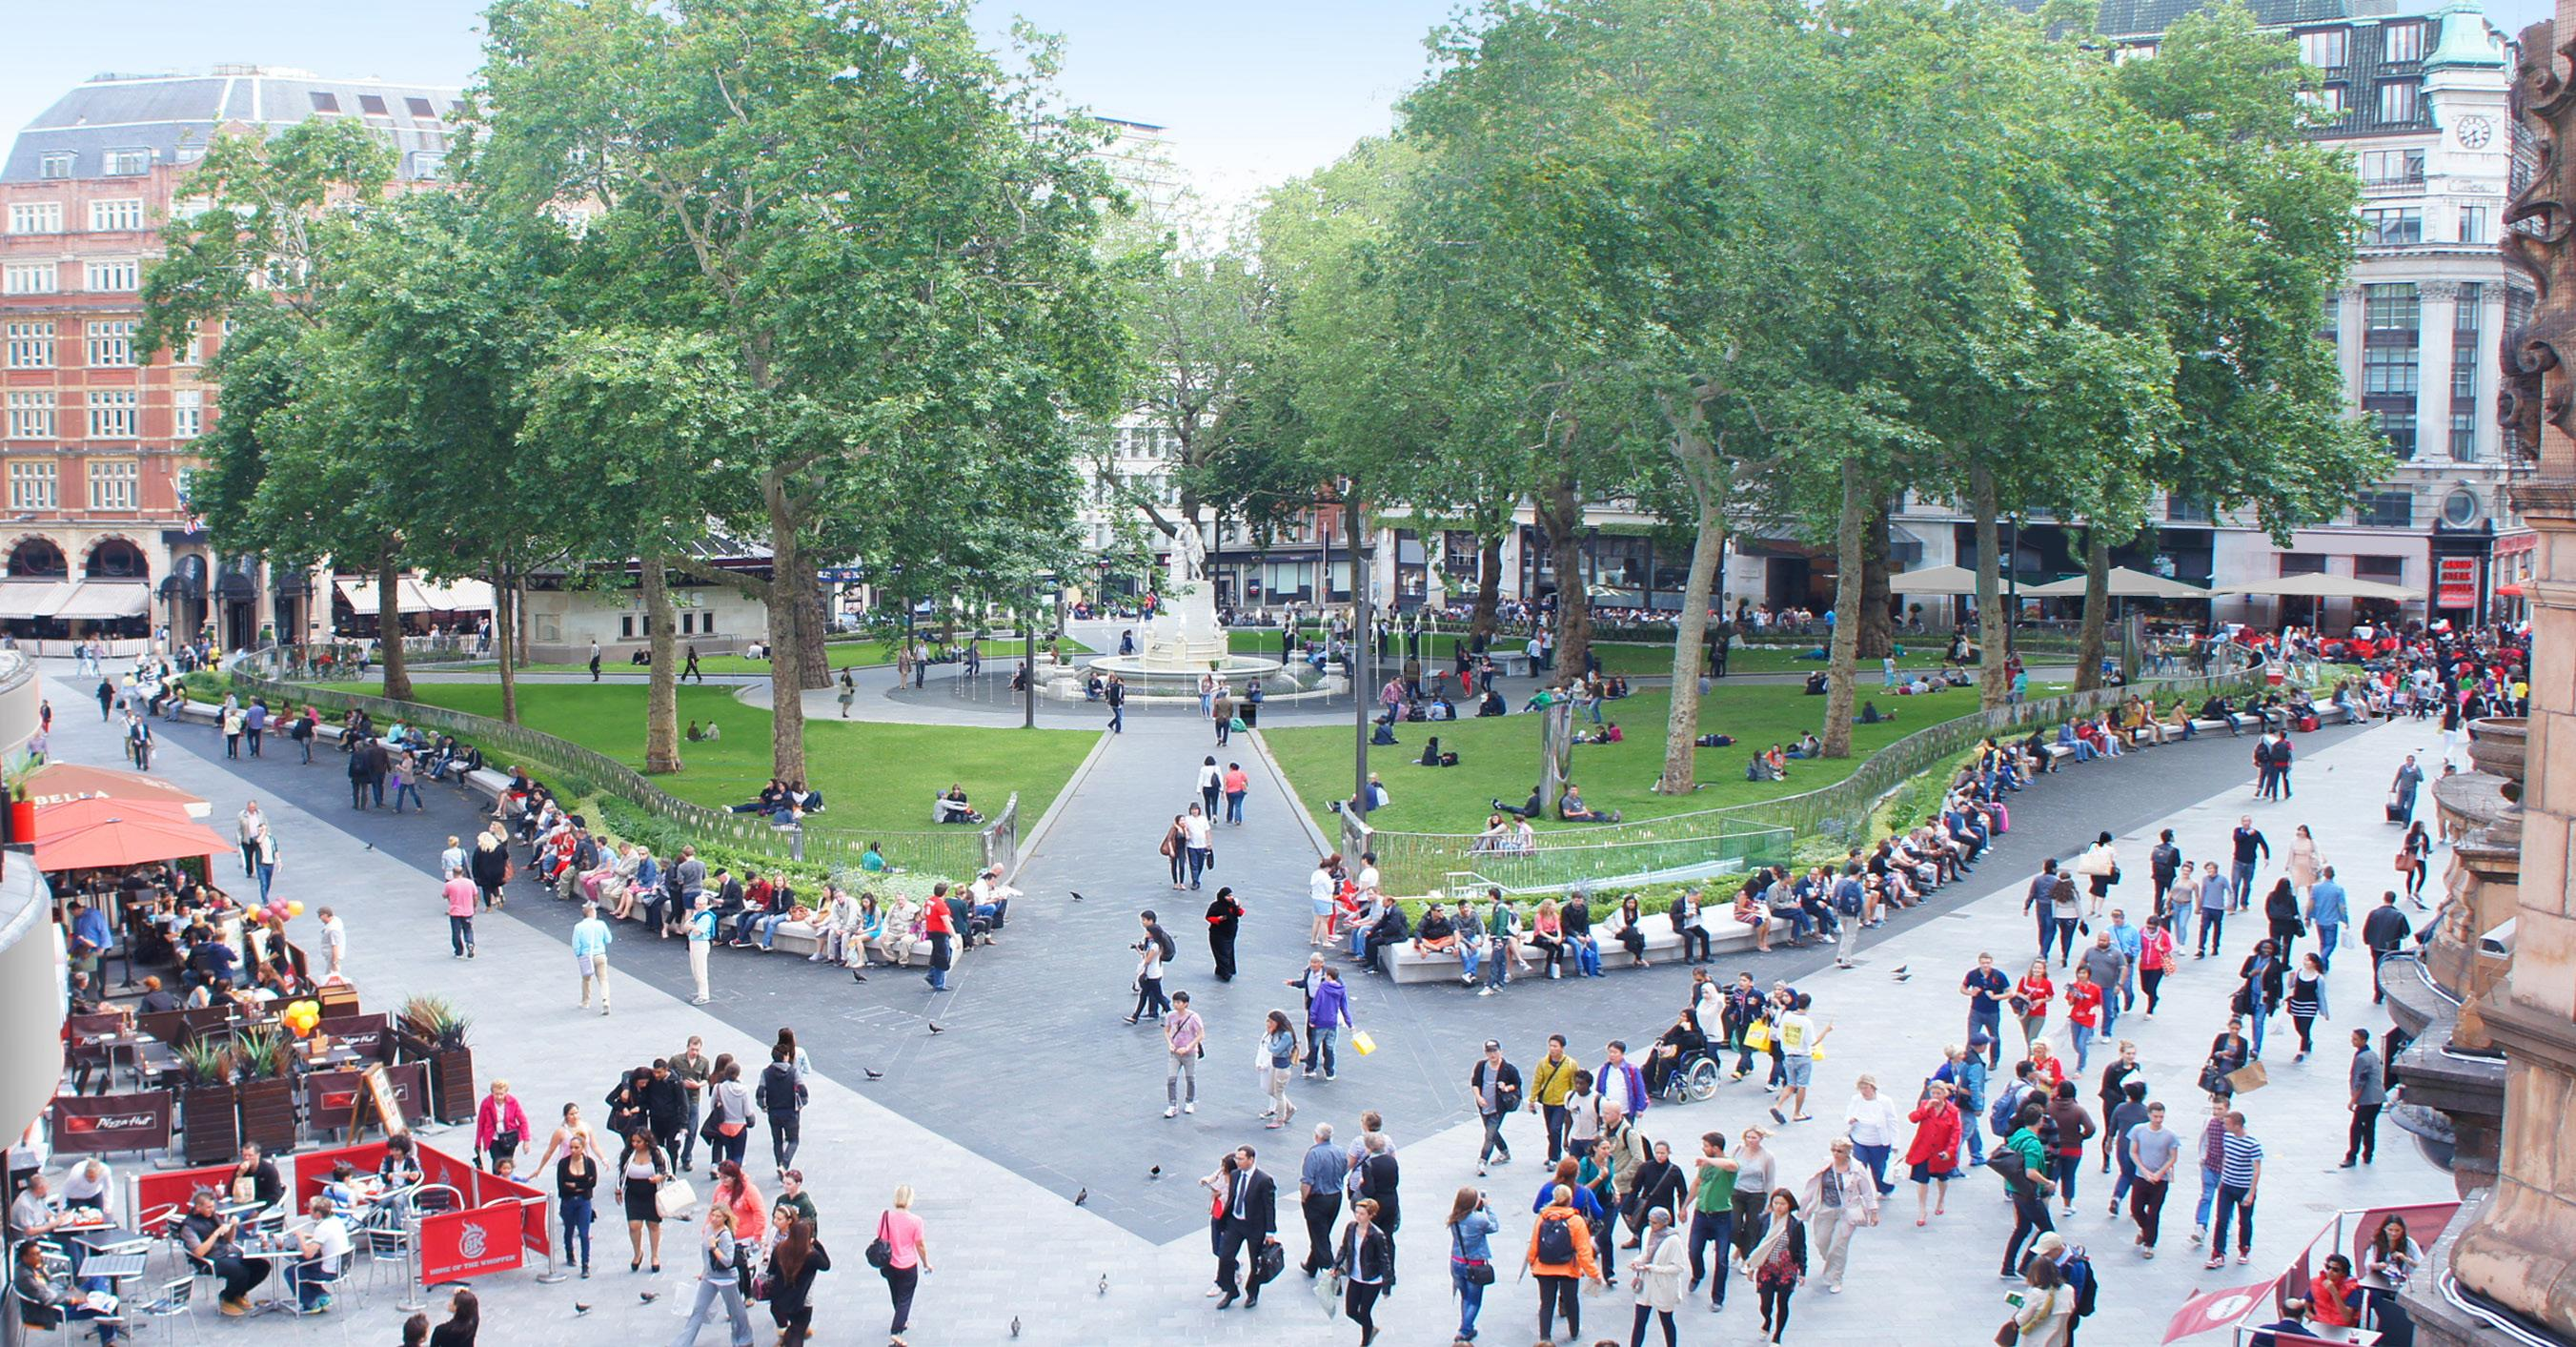 Page 48 of New life in public squares in the age of COVID-19